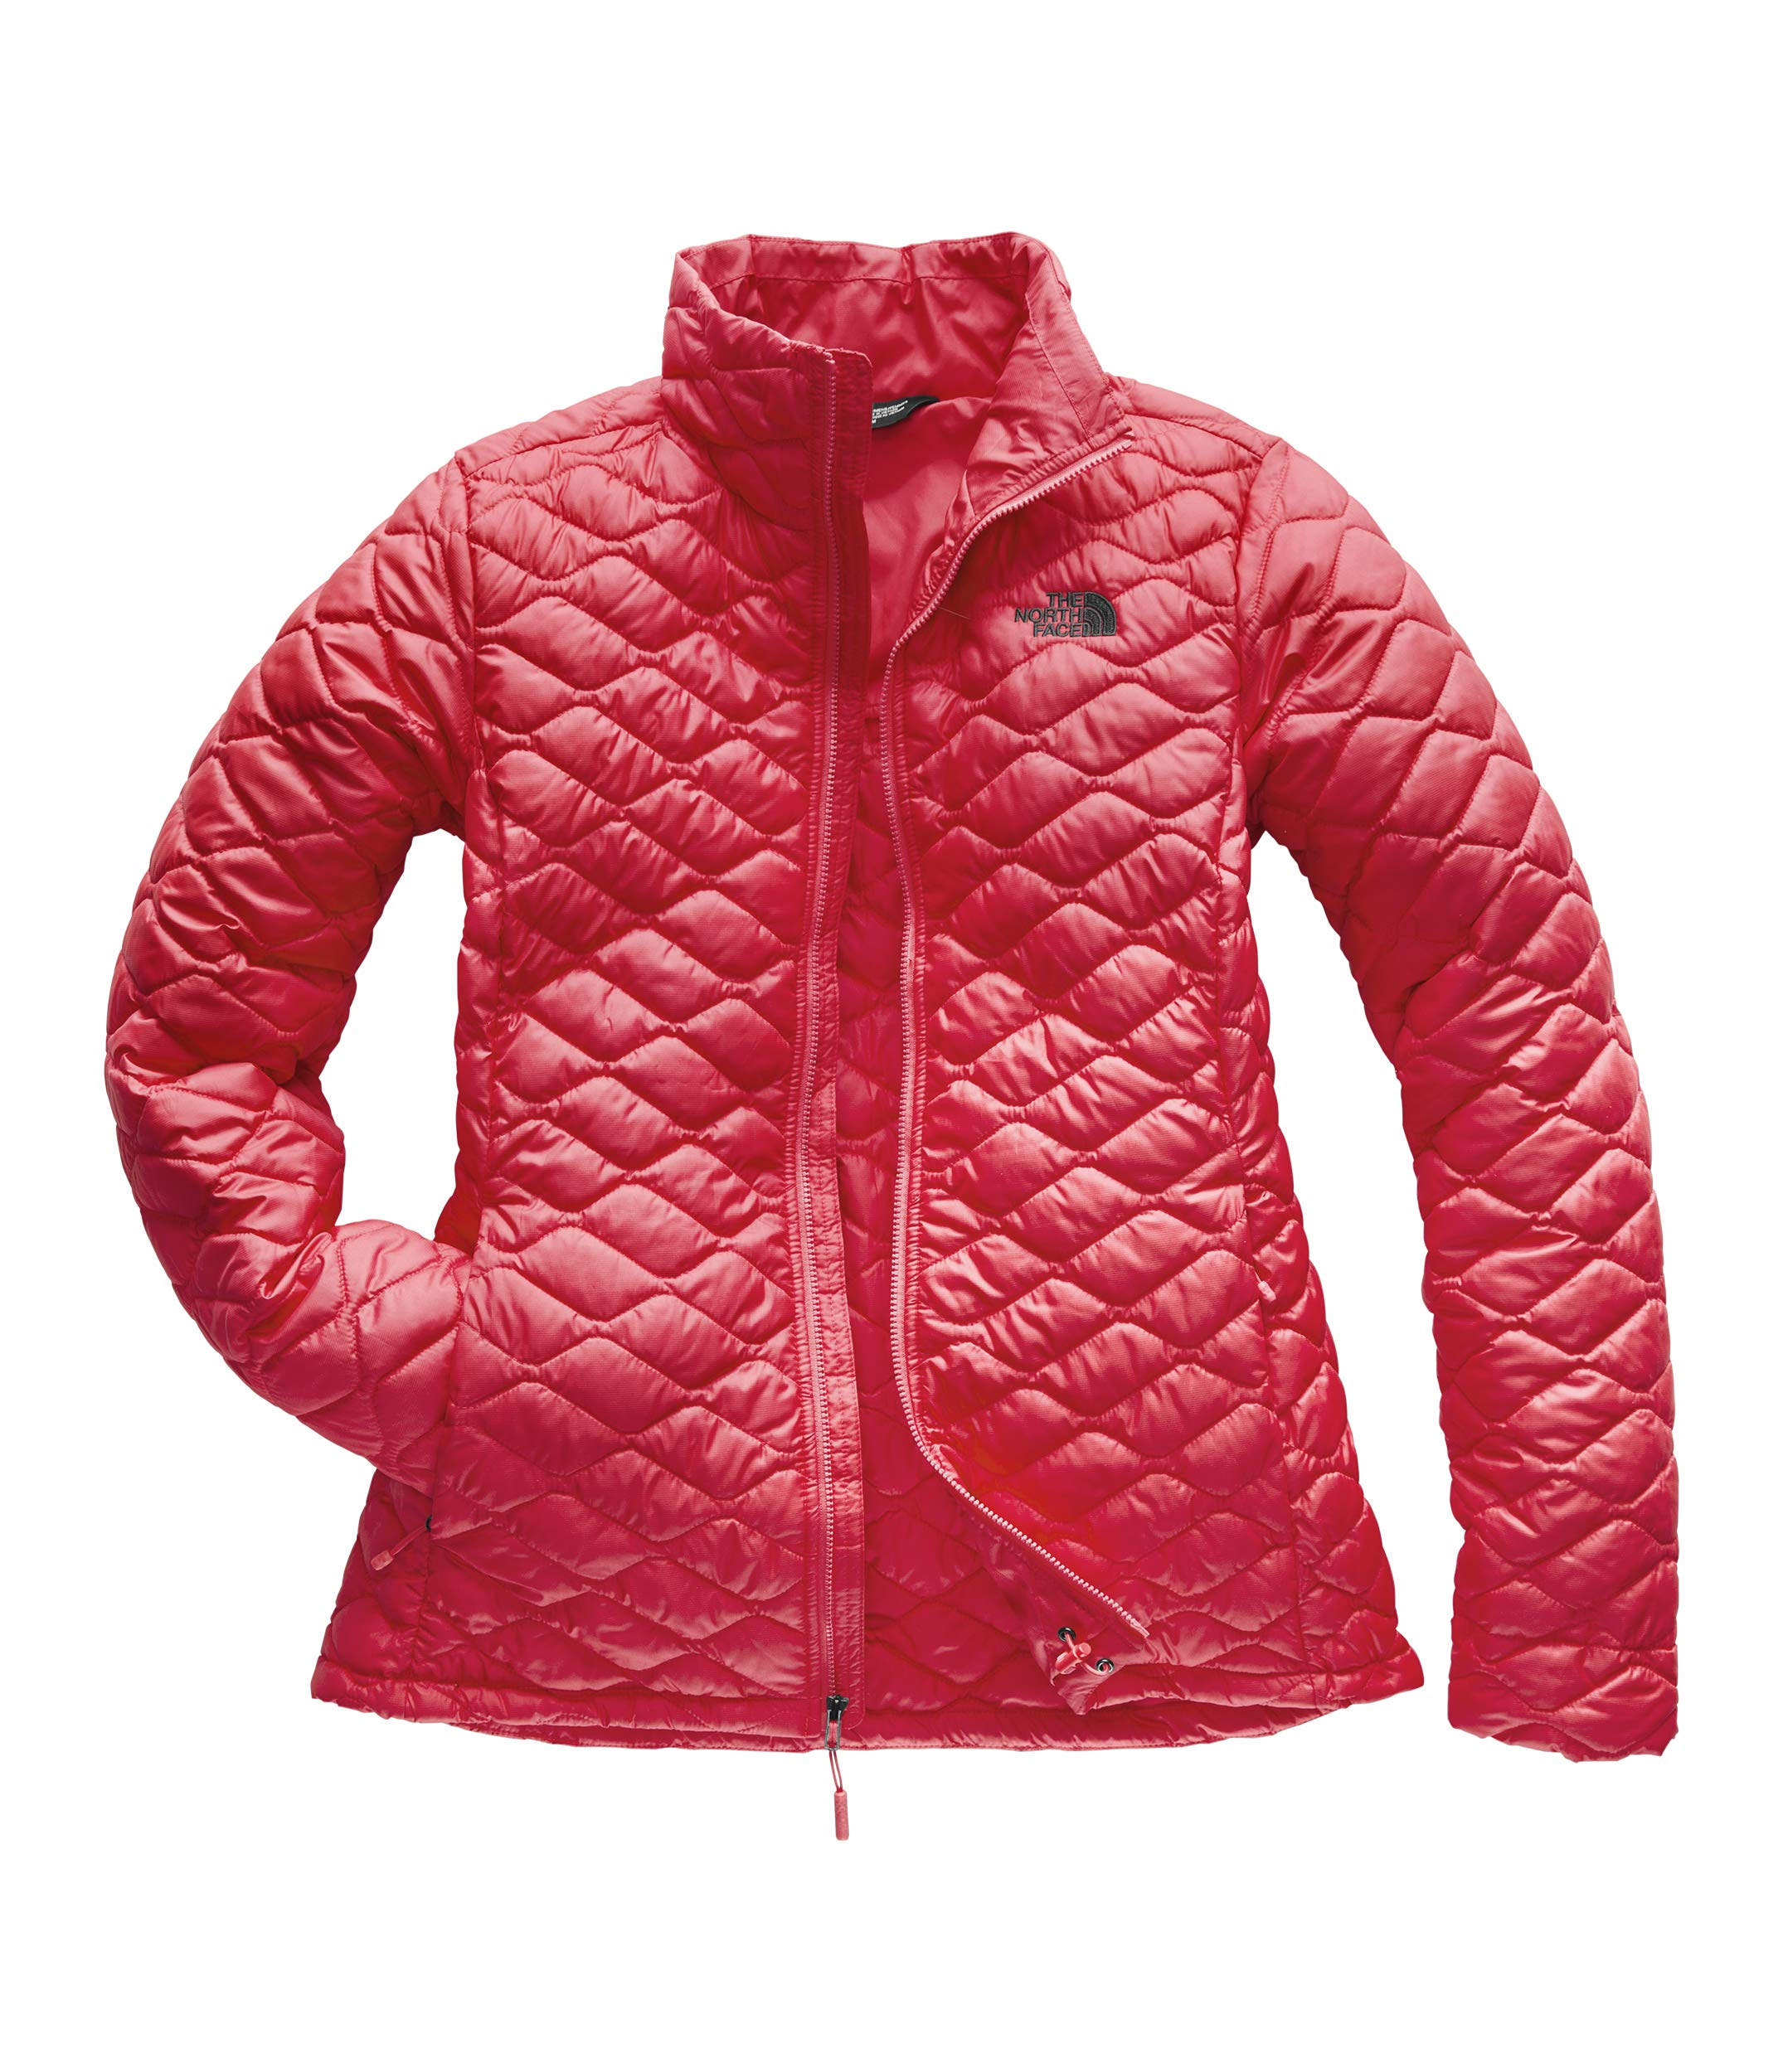 The North Face Women Thermoball Full Zip - Atomic Pink - S by The North Face